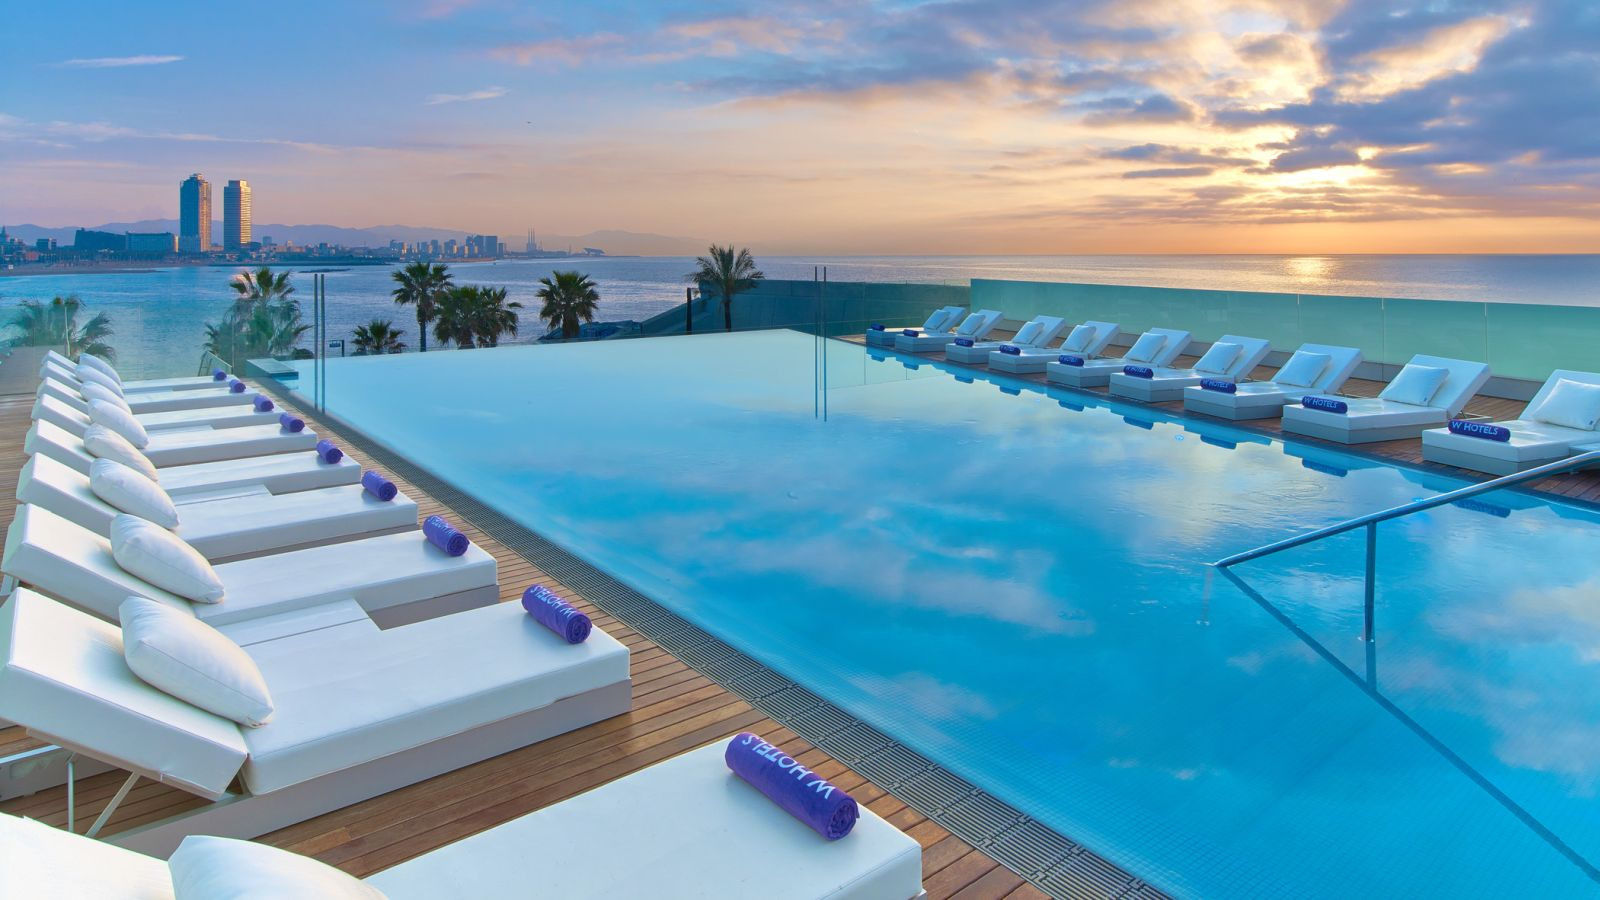 Barcelona hotels more than 2 200 hotels with reviews and prices compared in barcelona for Ecr beach resorts with swimming pool prices